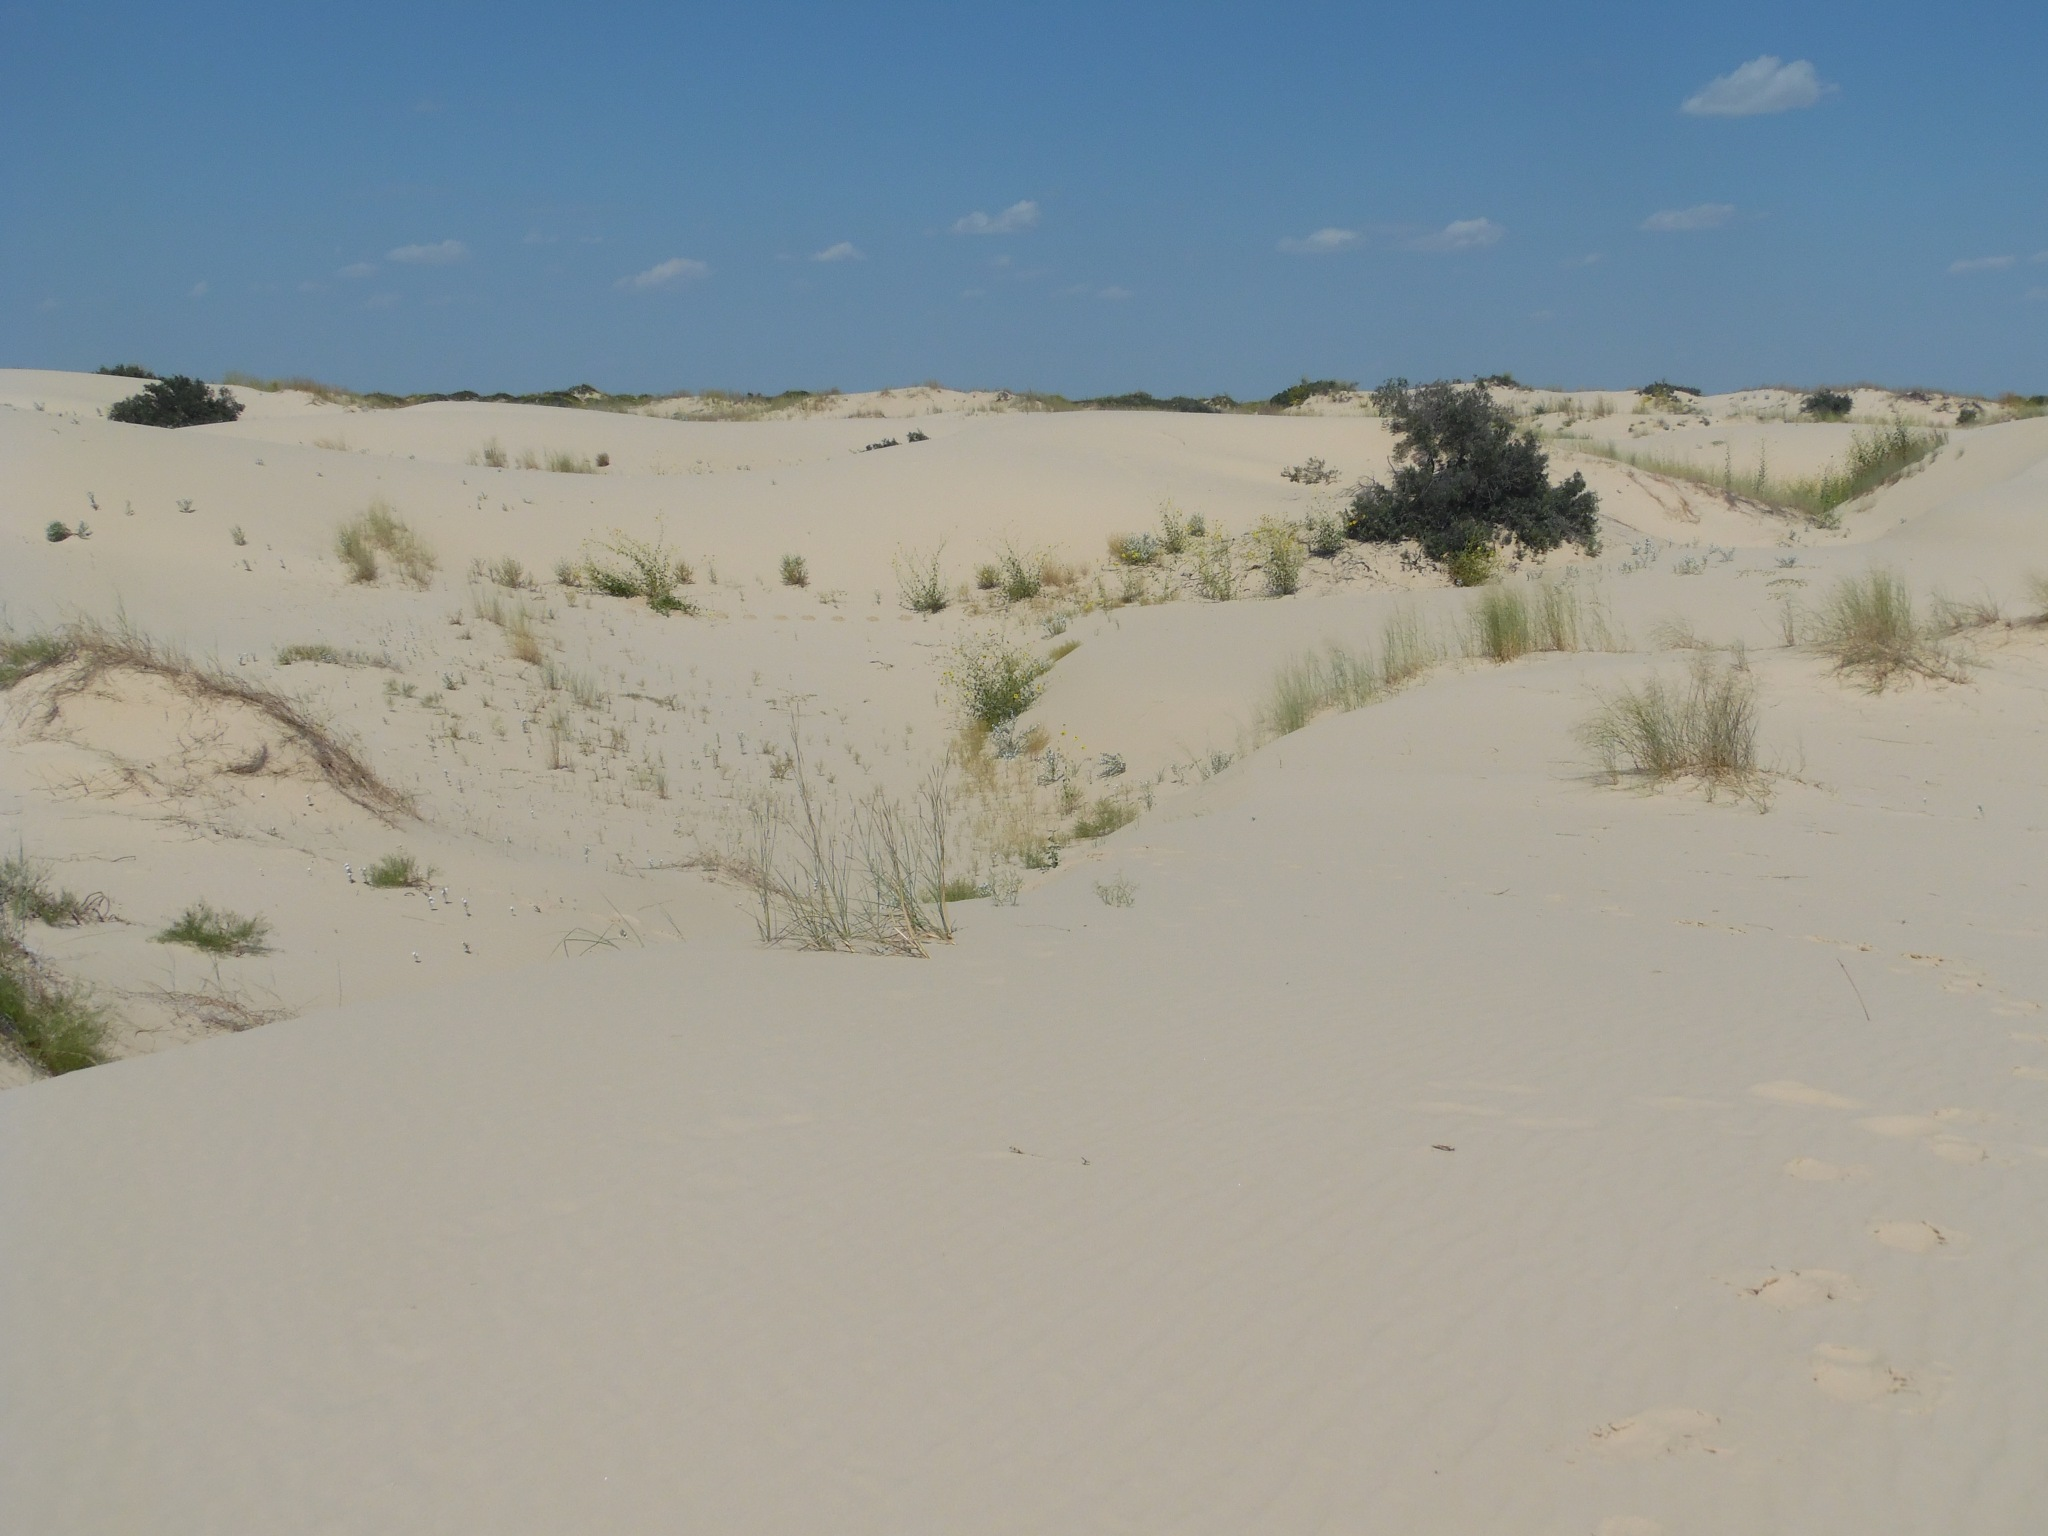 Dunes by john.fisher.7315